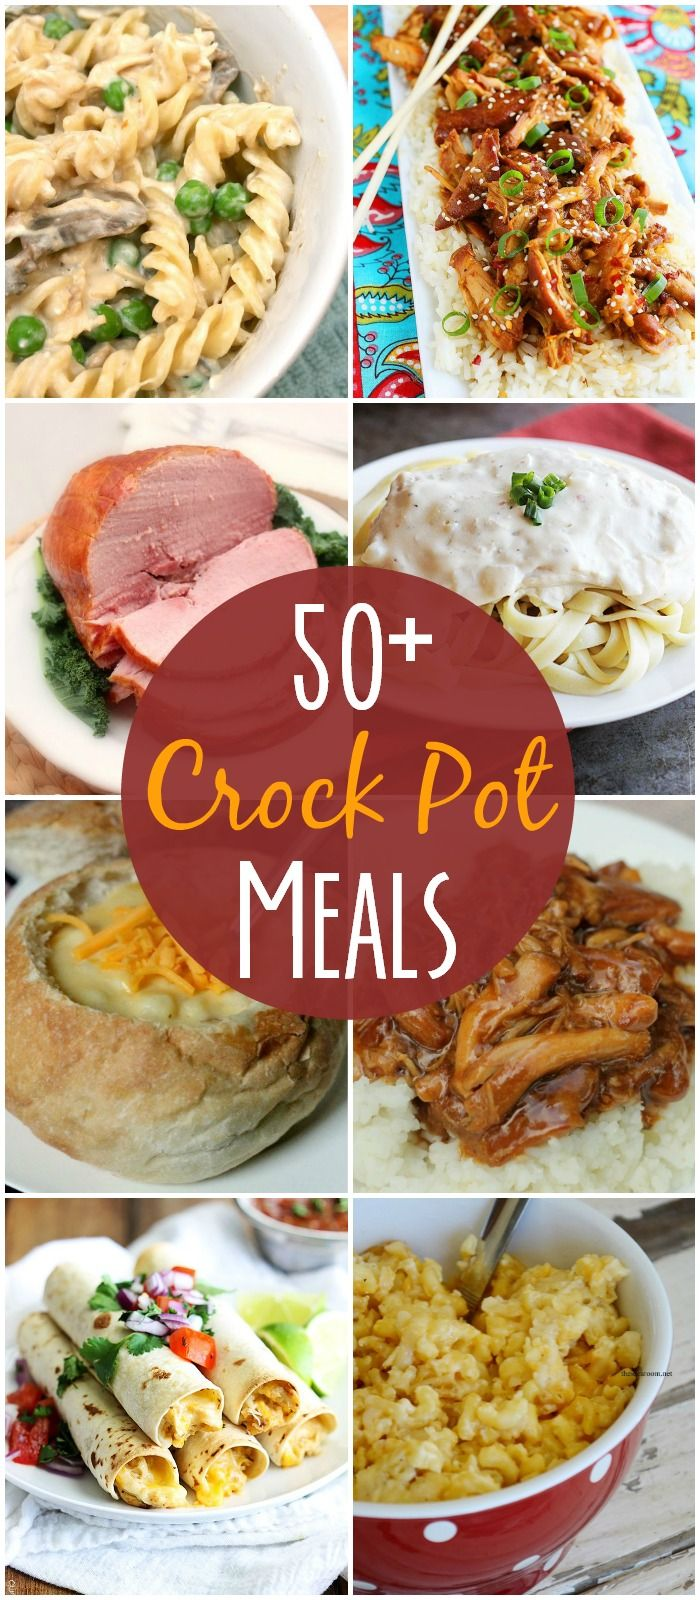 50+ recipes all made in the crock pot